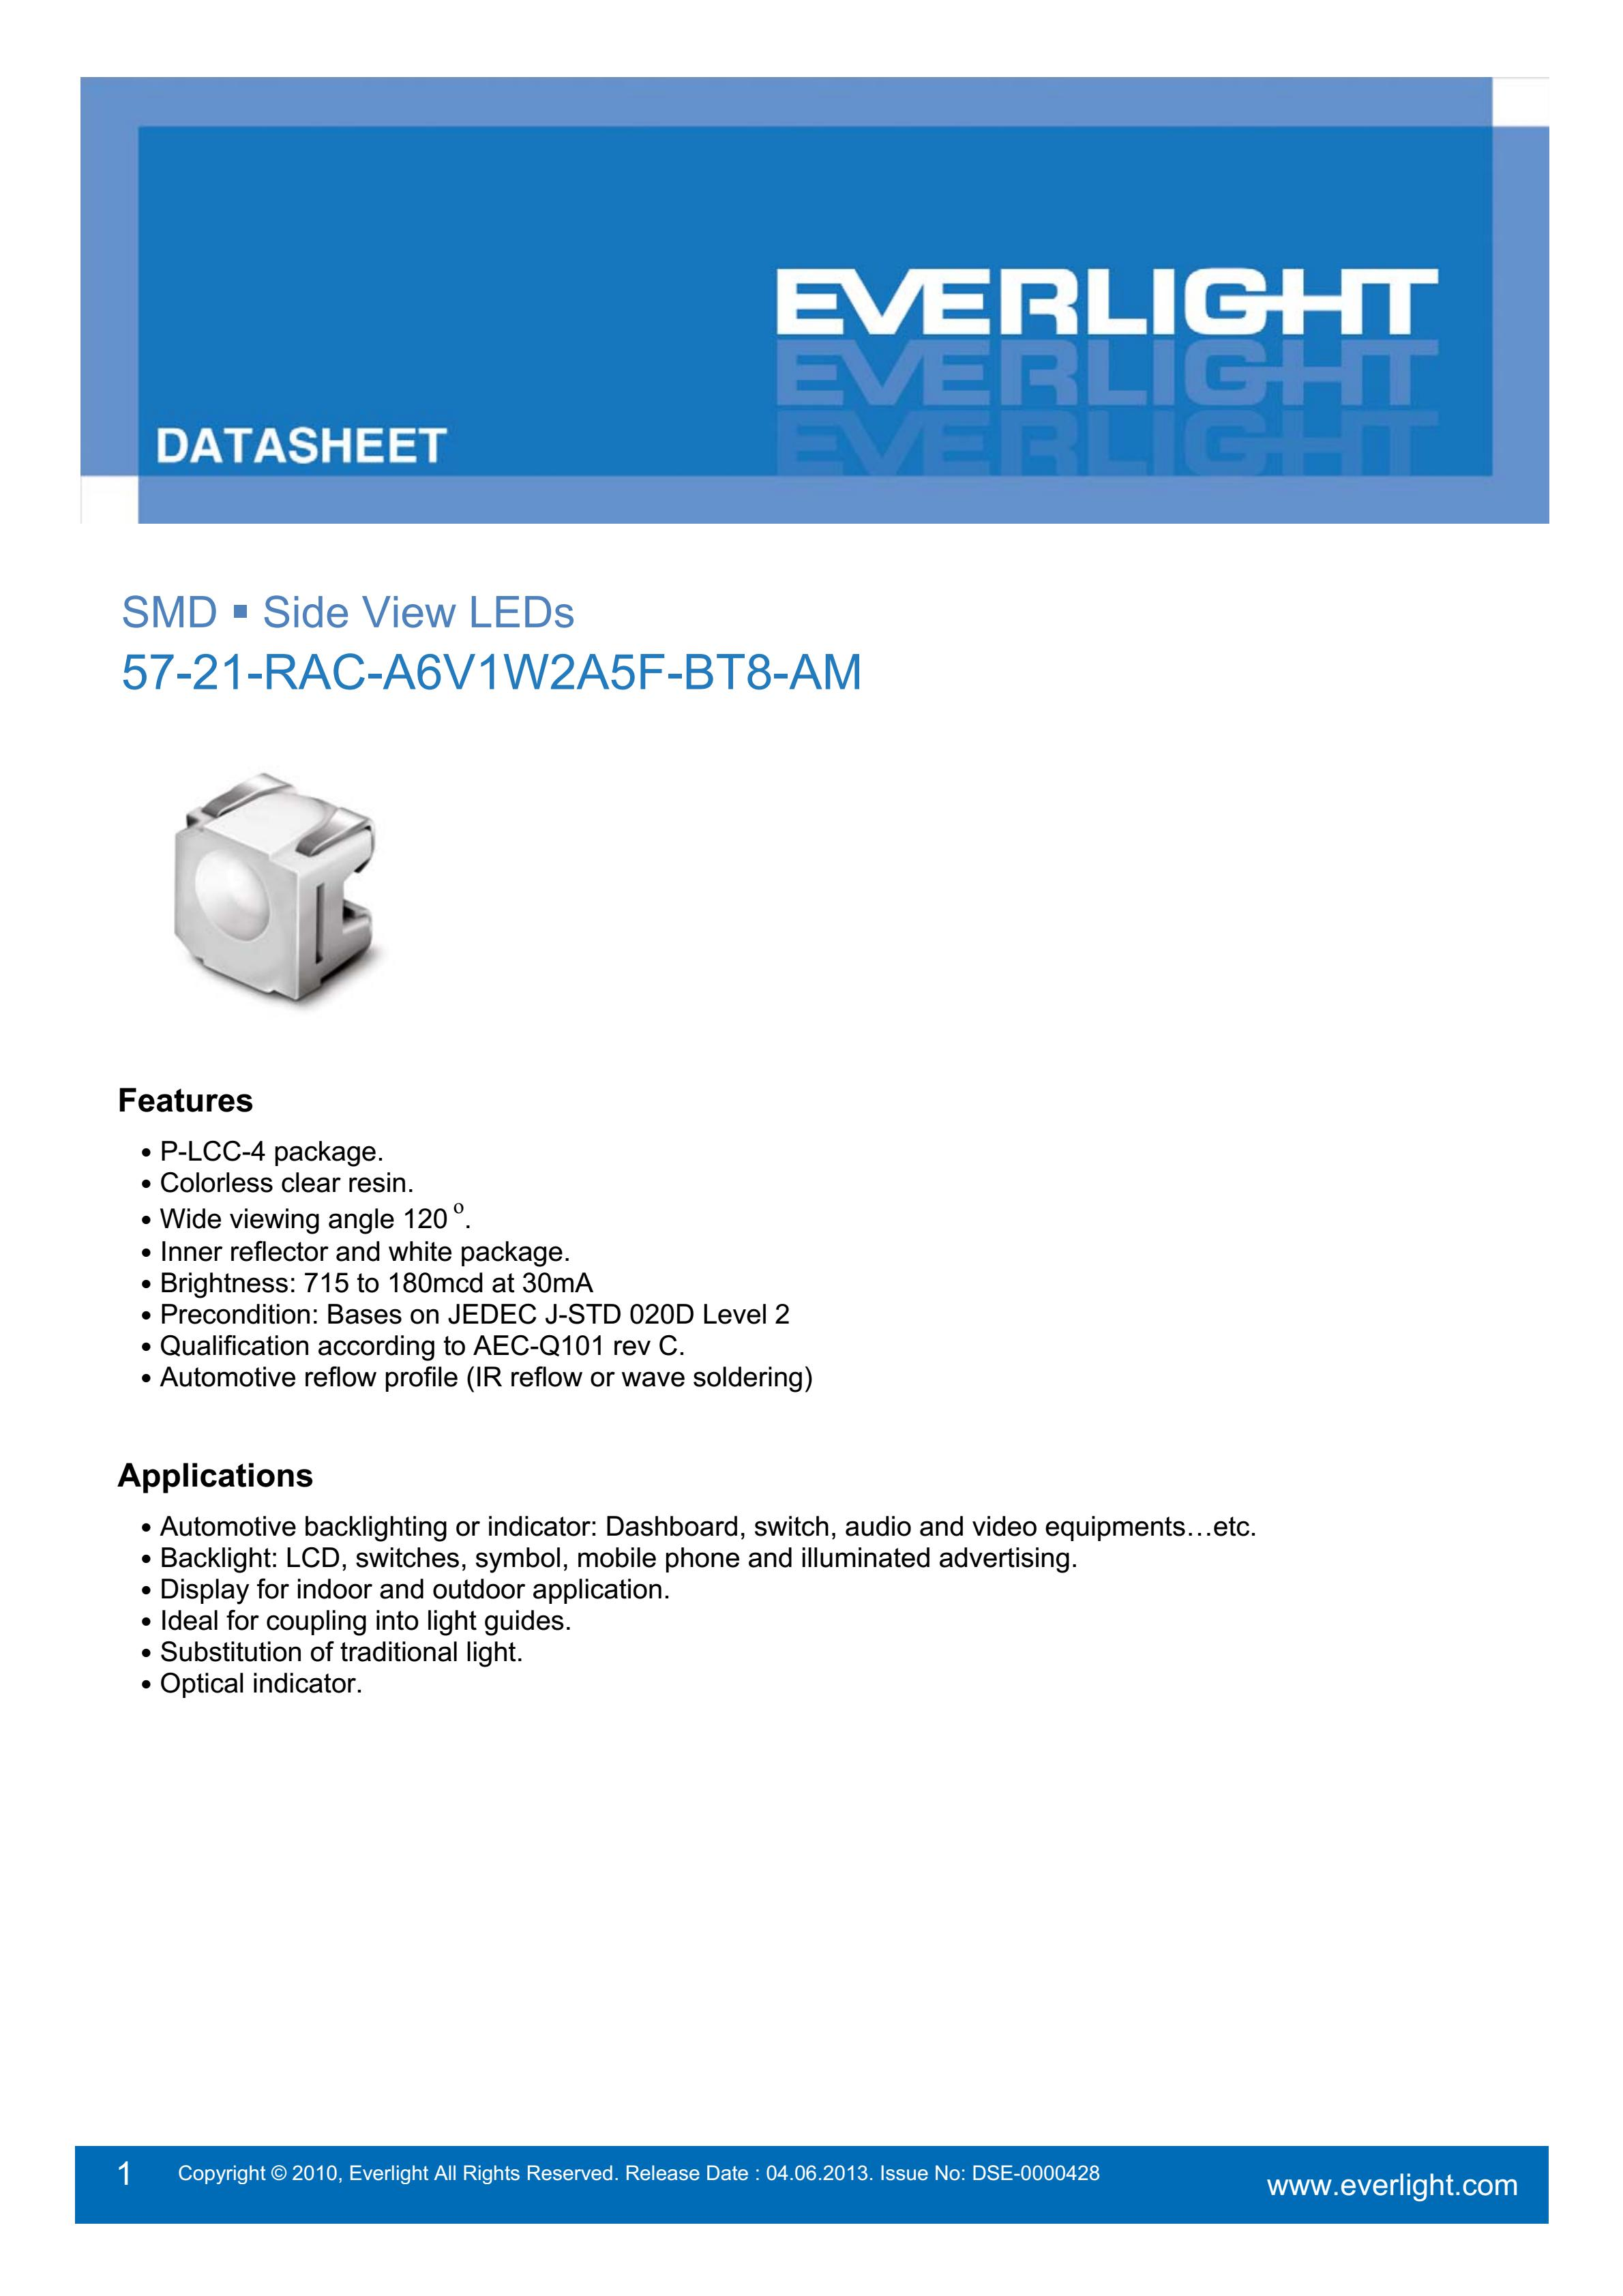 Everlight Car lamp beads  57-21-RAC-A6V1W2A5F-BT8-AM Datasheet